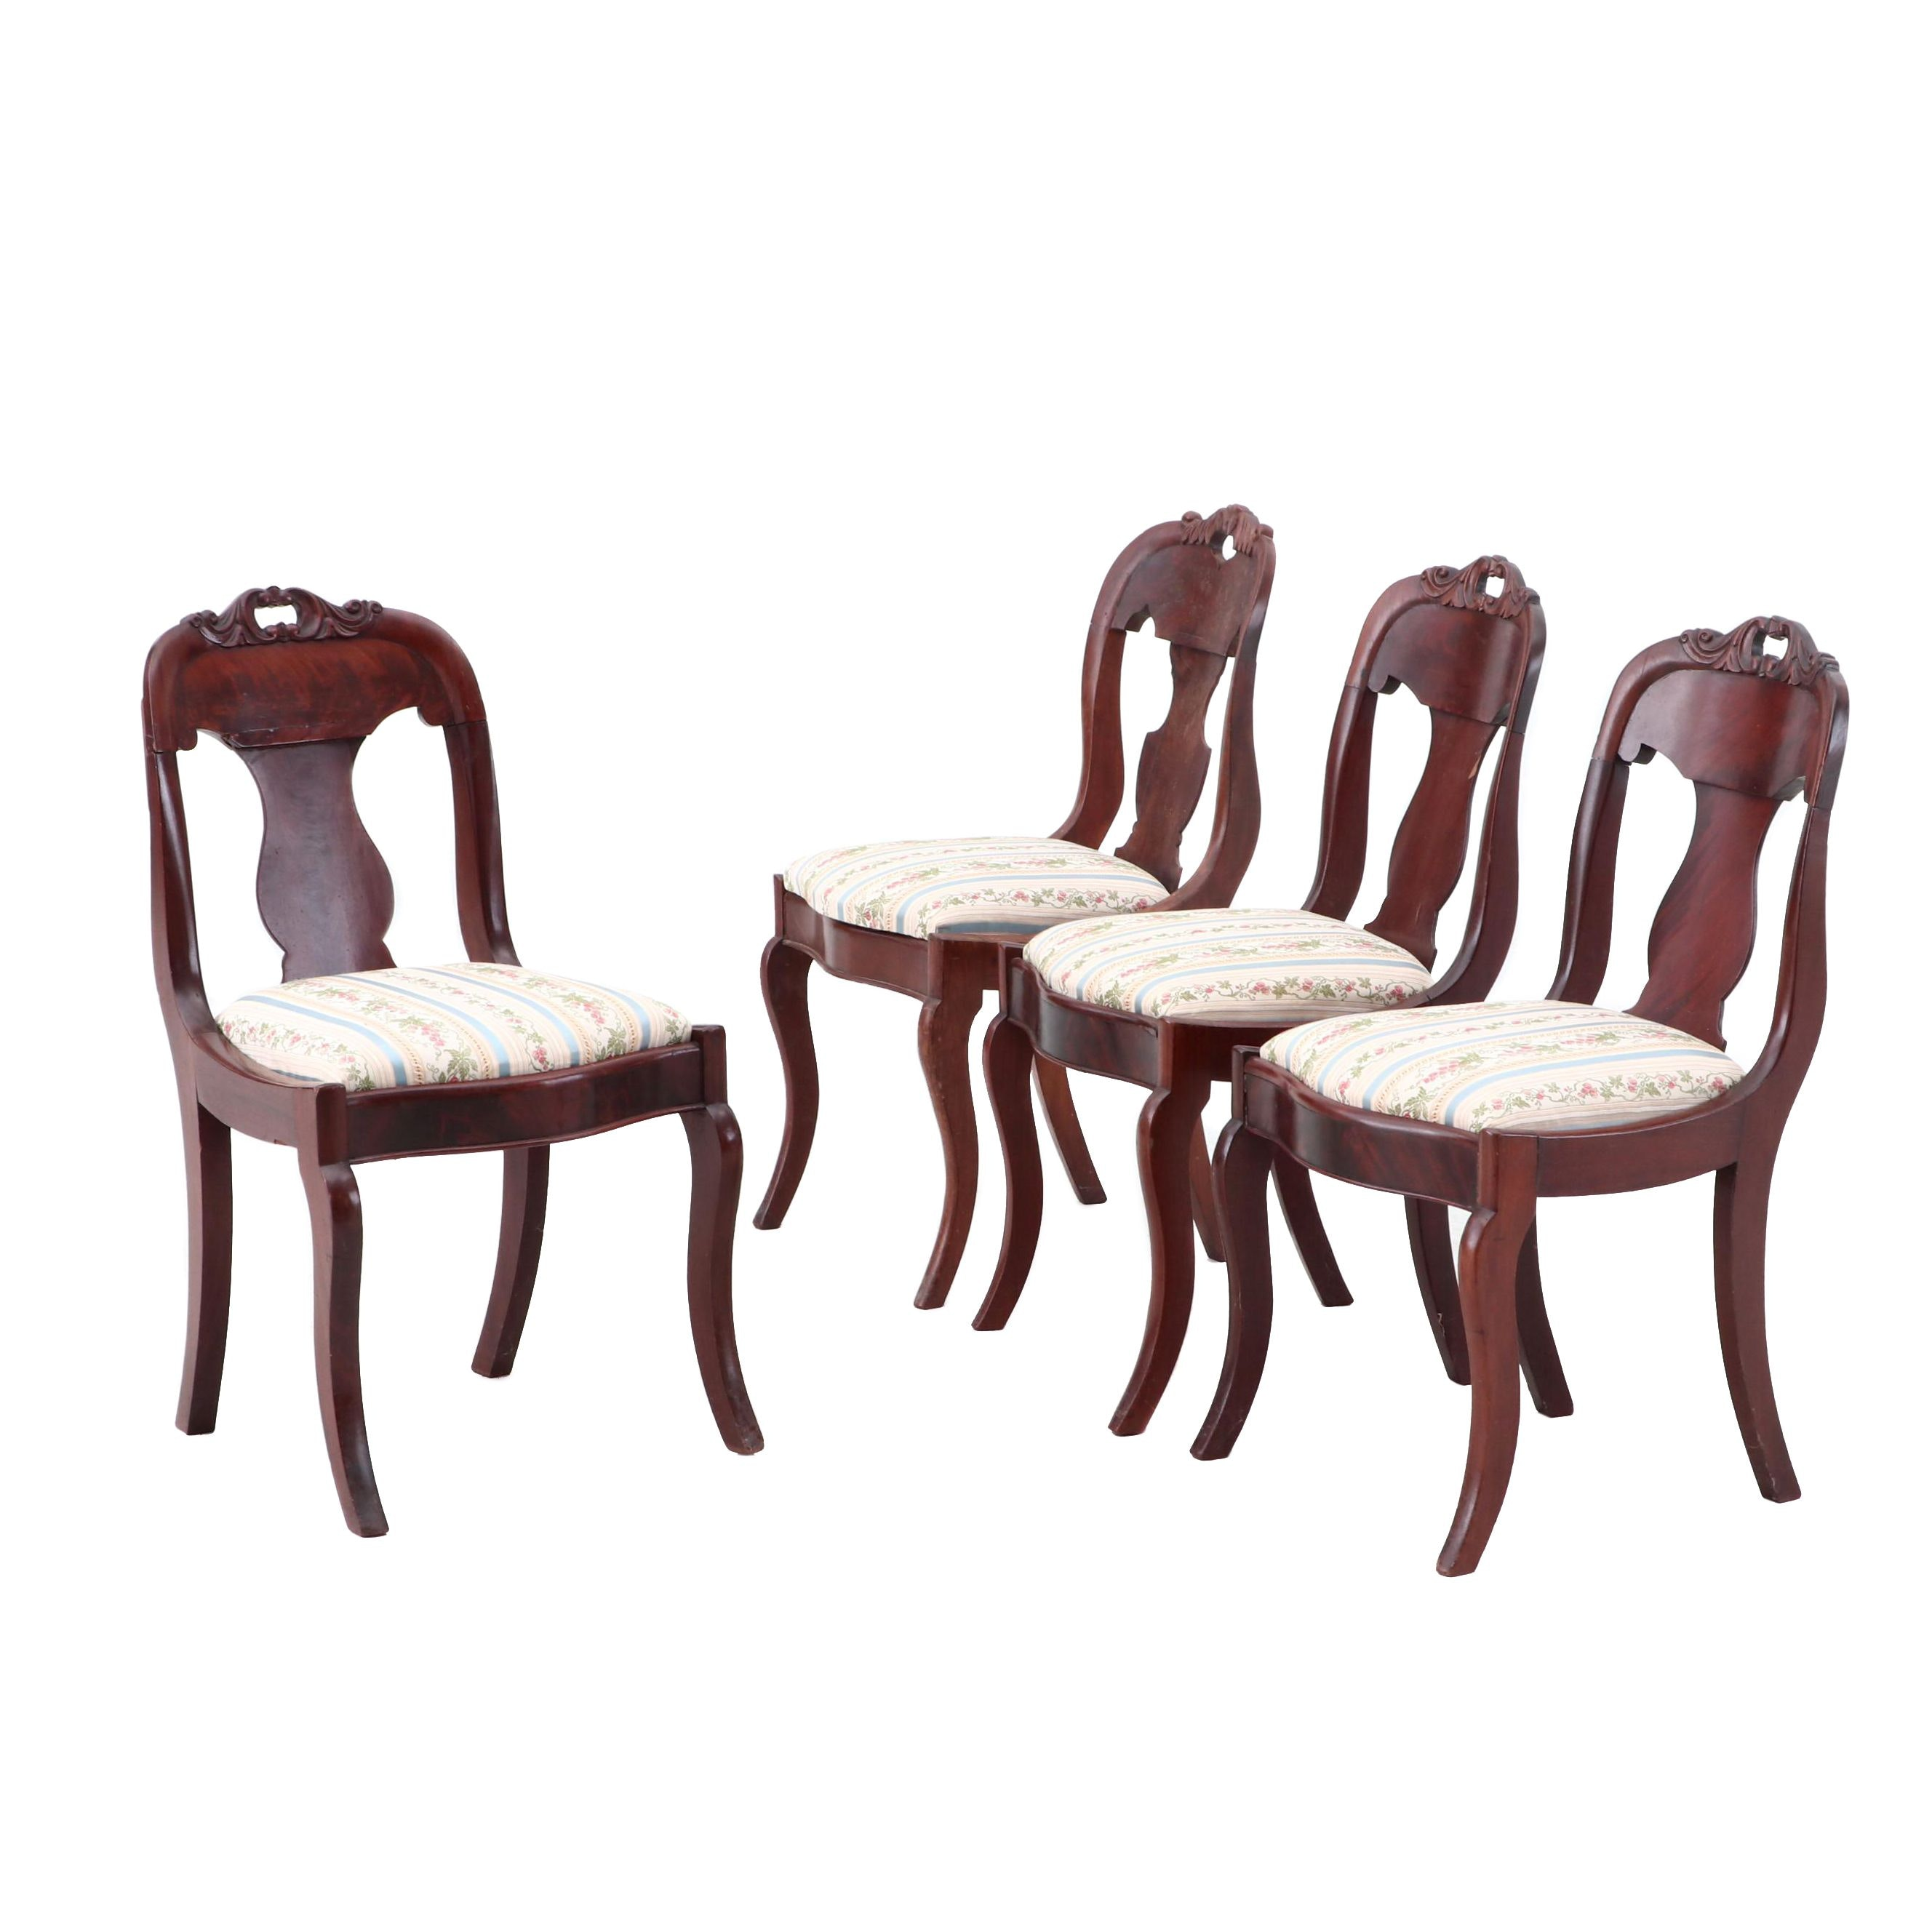 Four Mahogany Empire Side Chairs, circa 1840